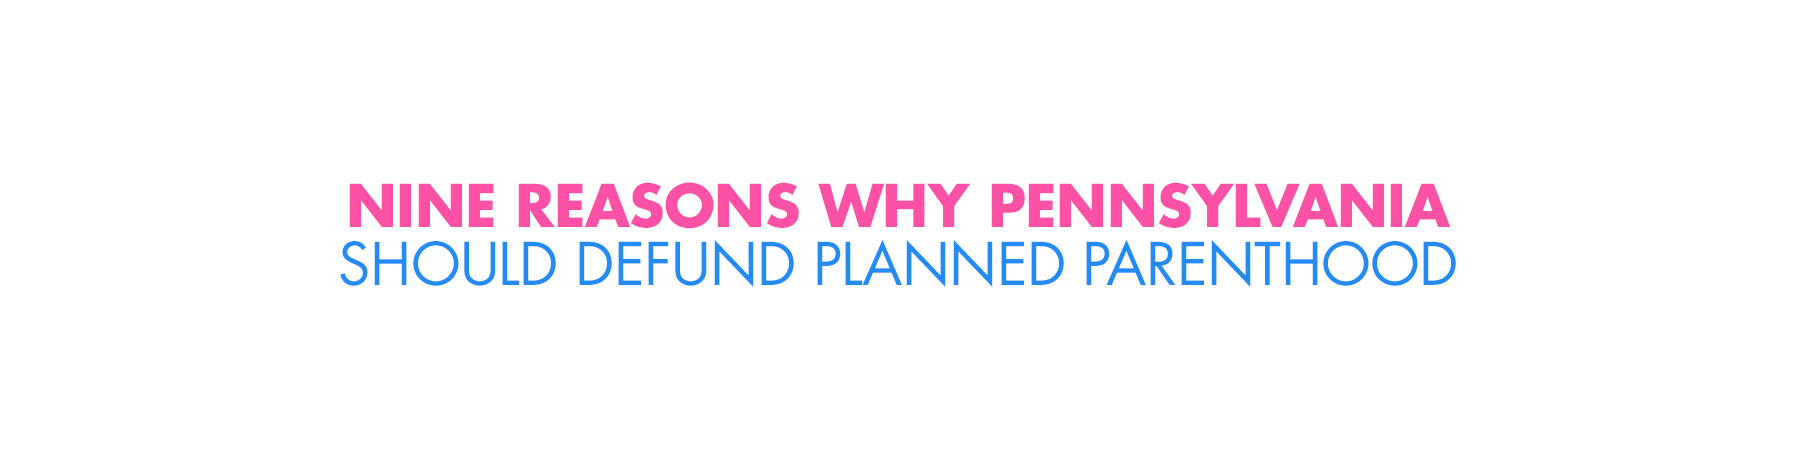 Nine-Reasons-Why-PA-Should-Defund-PP-Rotator